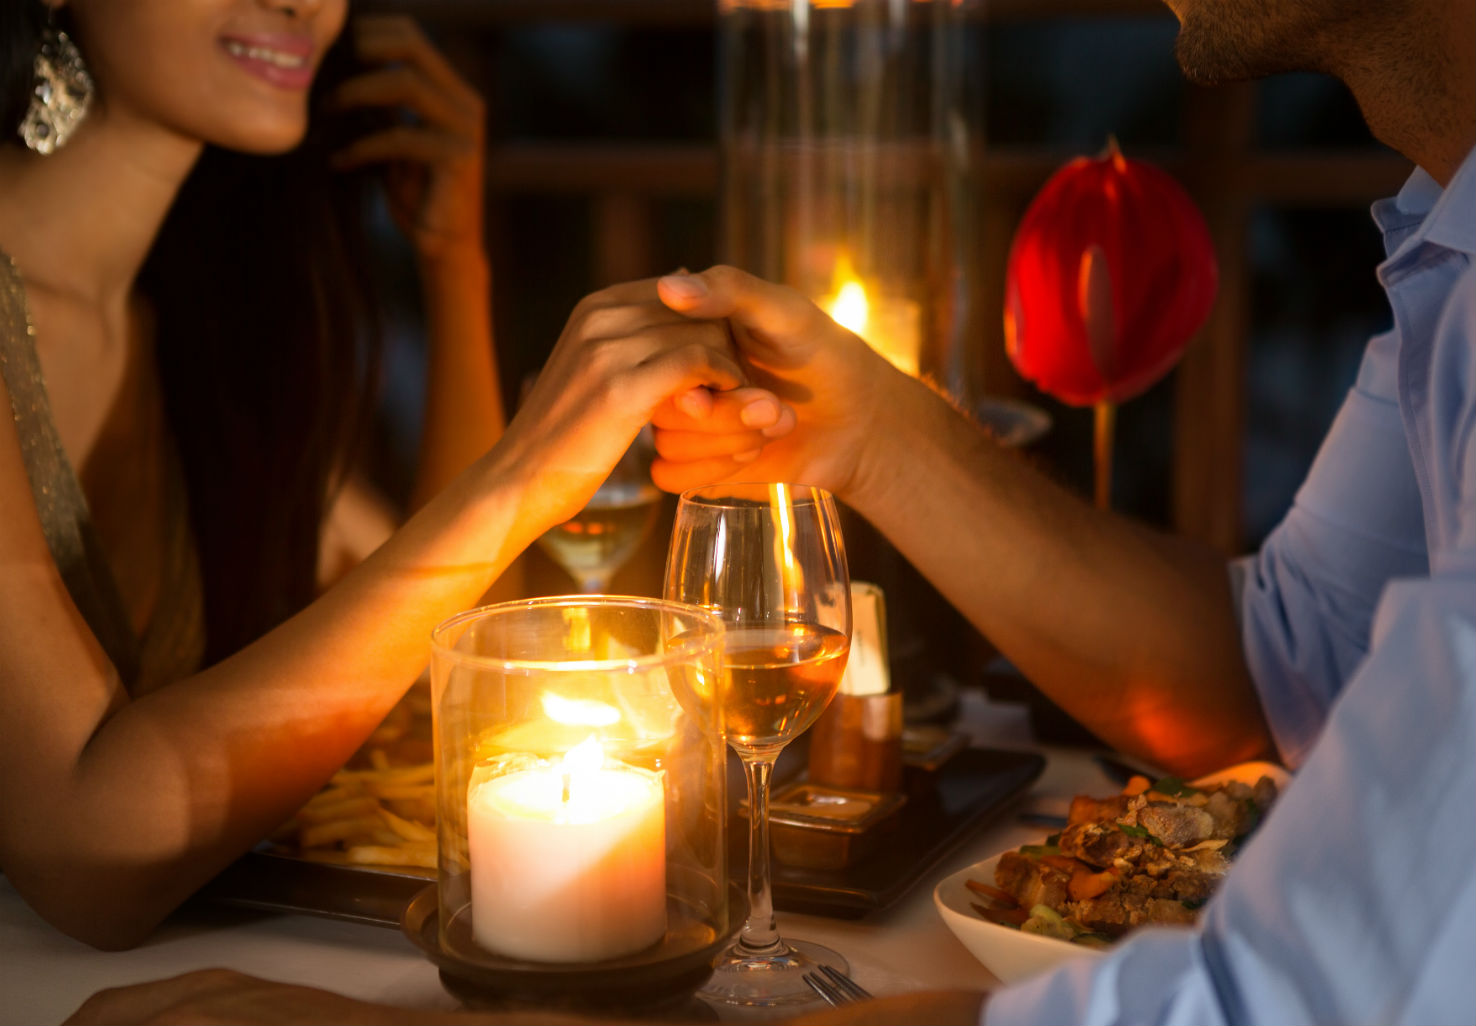 Couple holding hands over romantic candlelit dinner